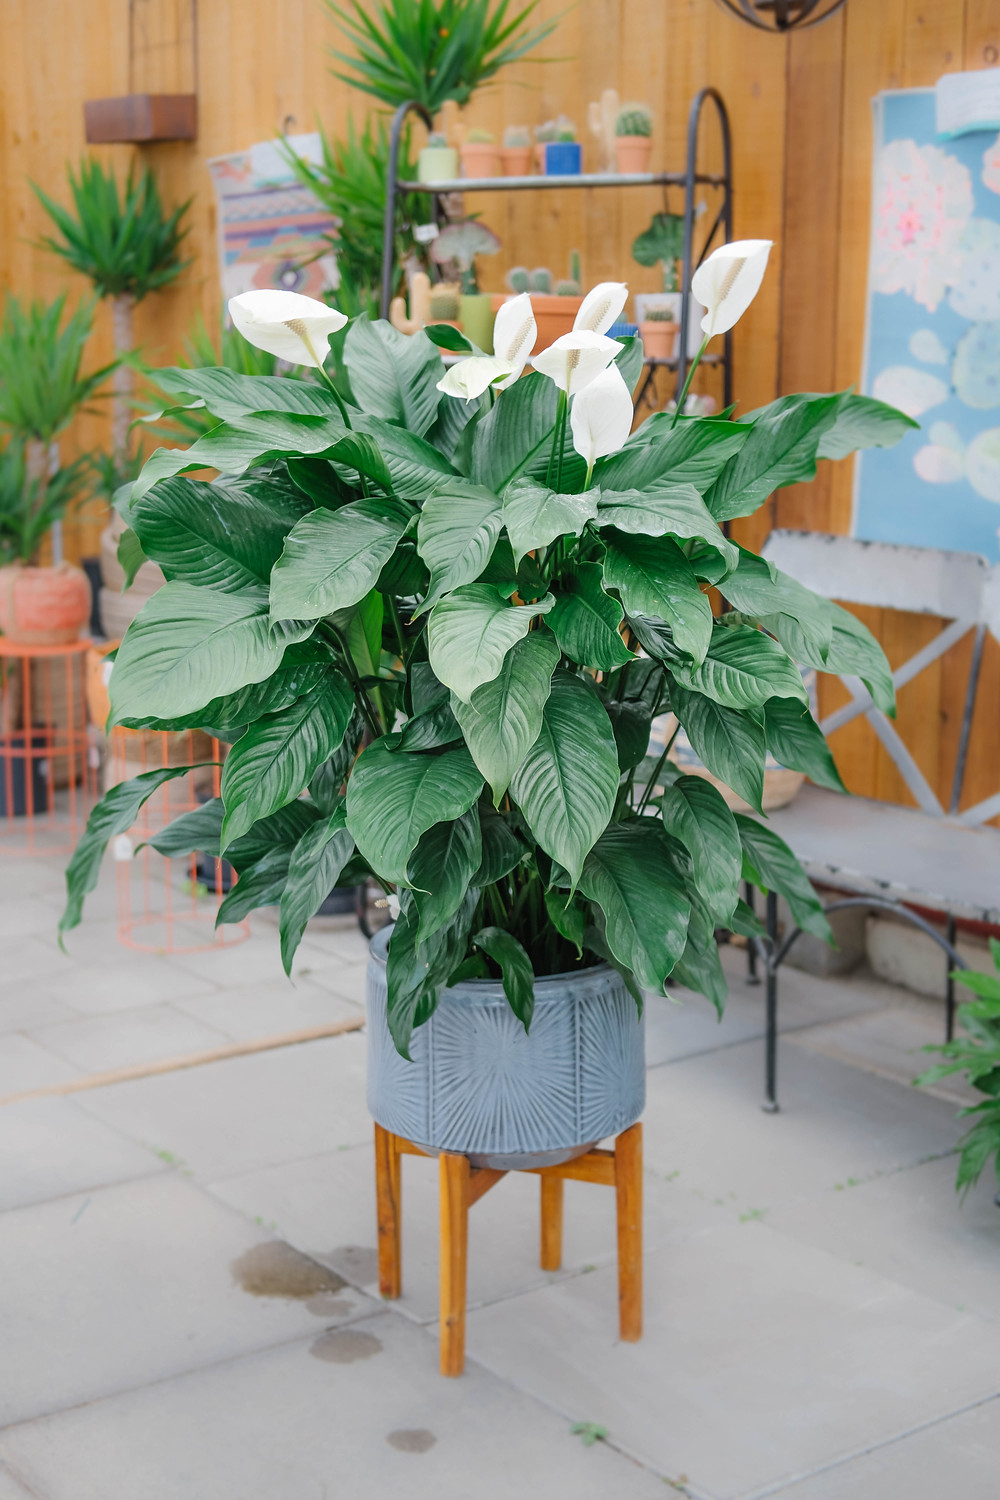 Green Indoor Plant with White Flower Peace Lily